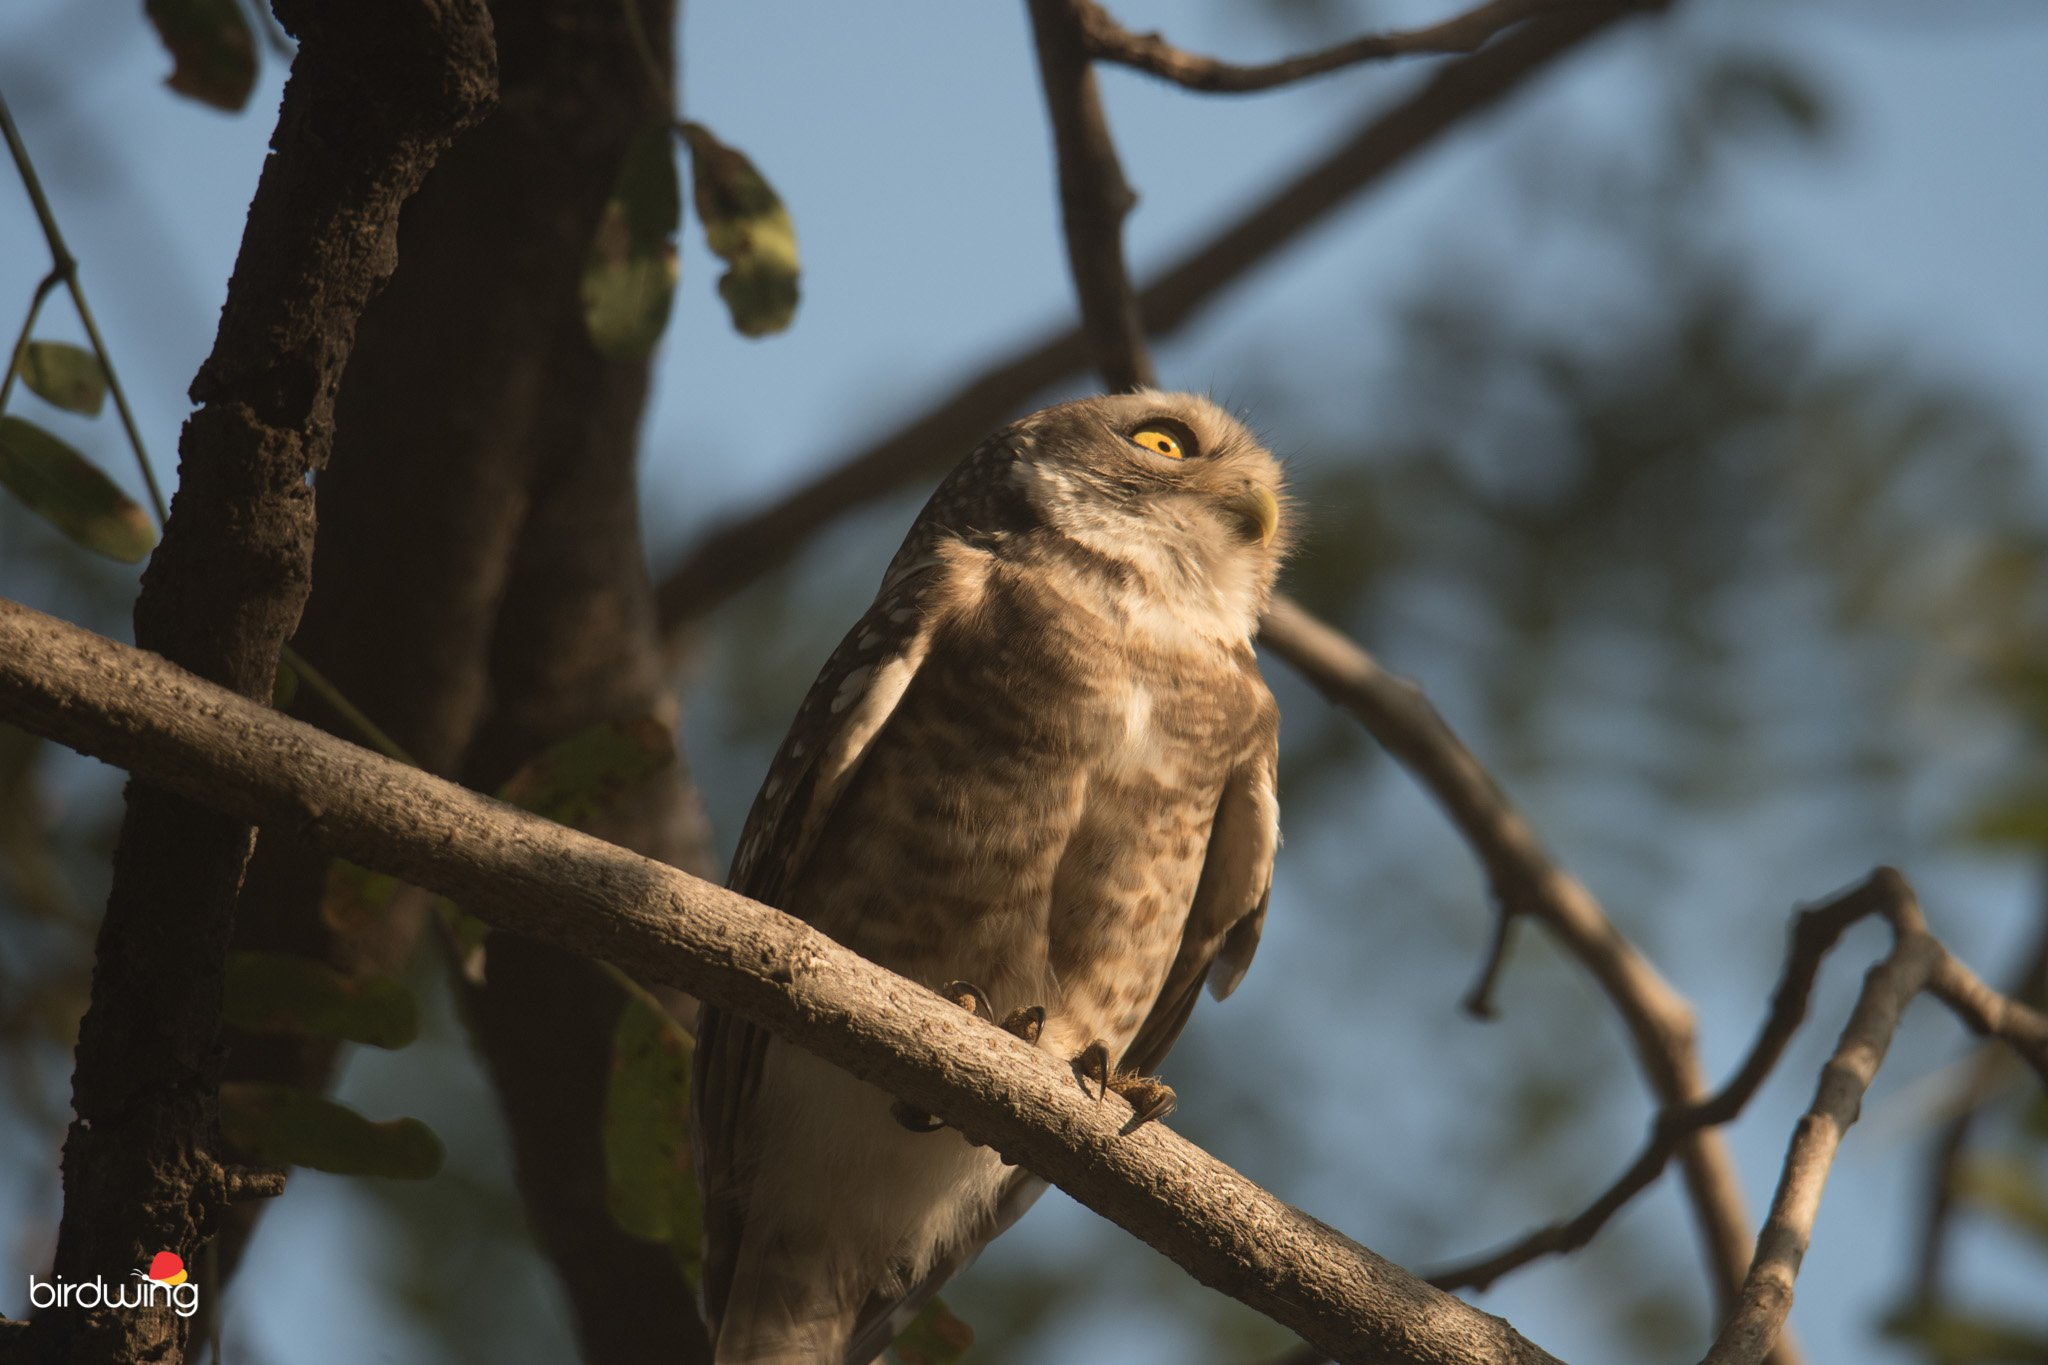 spotted-owlet-full-image